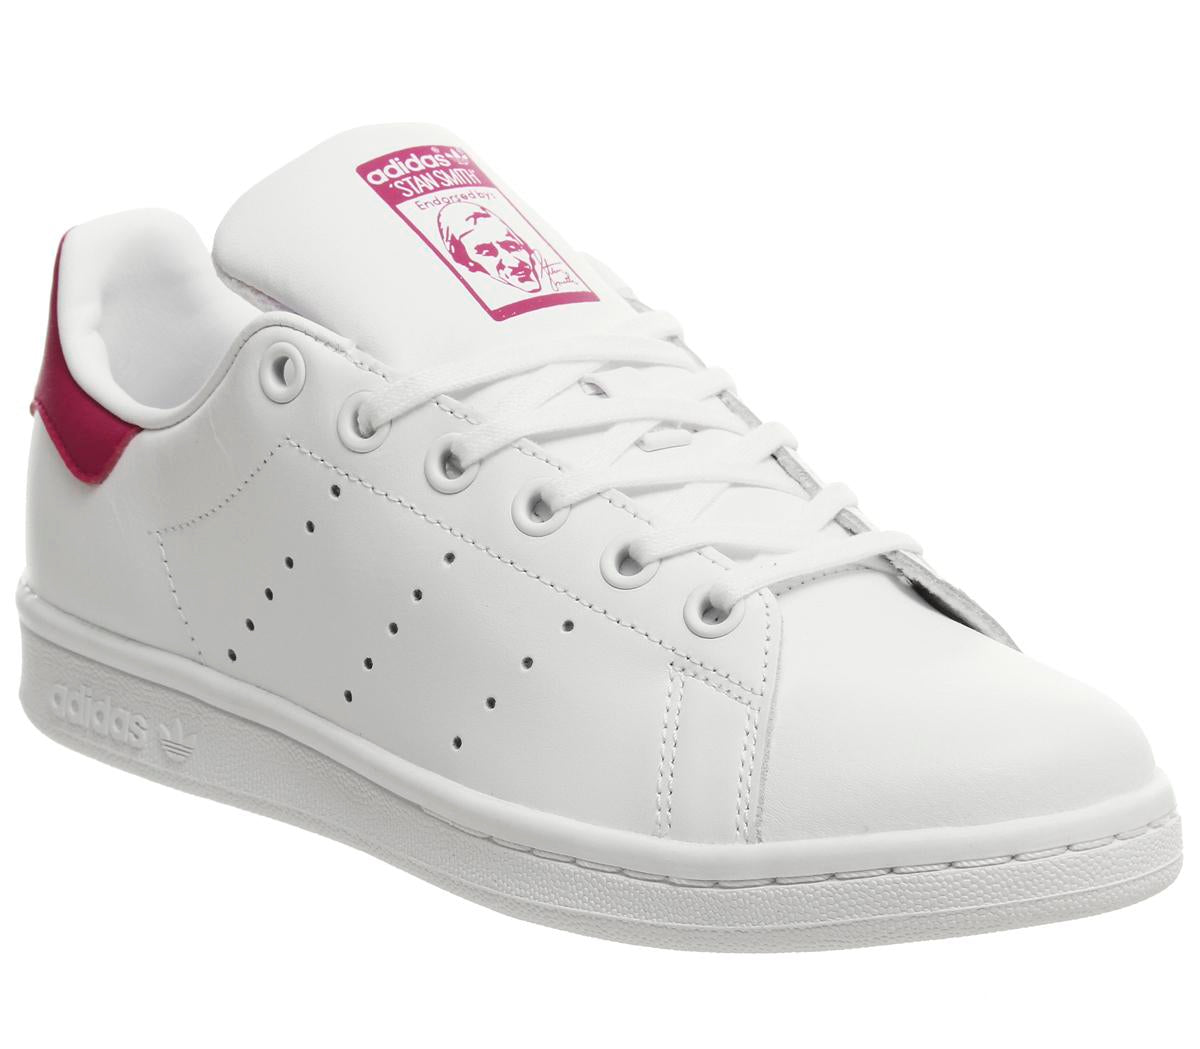 huge selection of 7f9a9 b7555 Womens Adidas Stan Smith Gs White White Bold Pink Uk Size 4.5